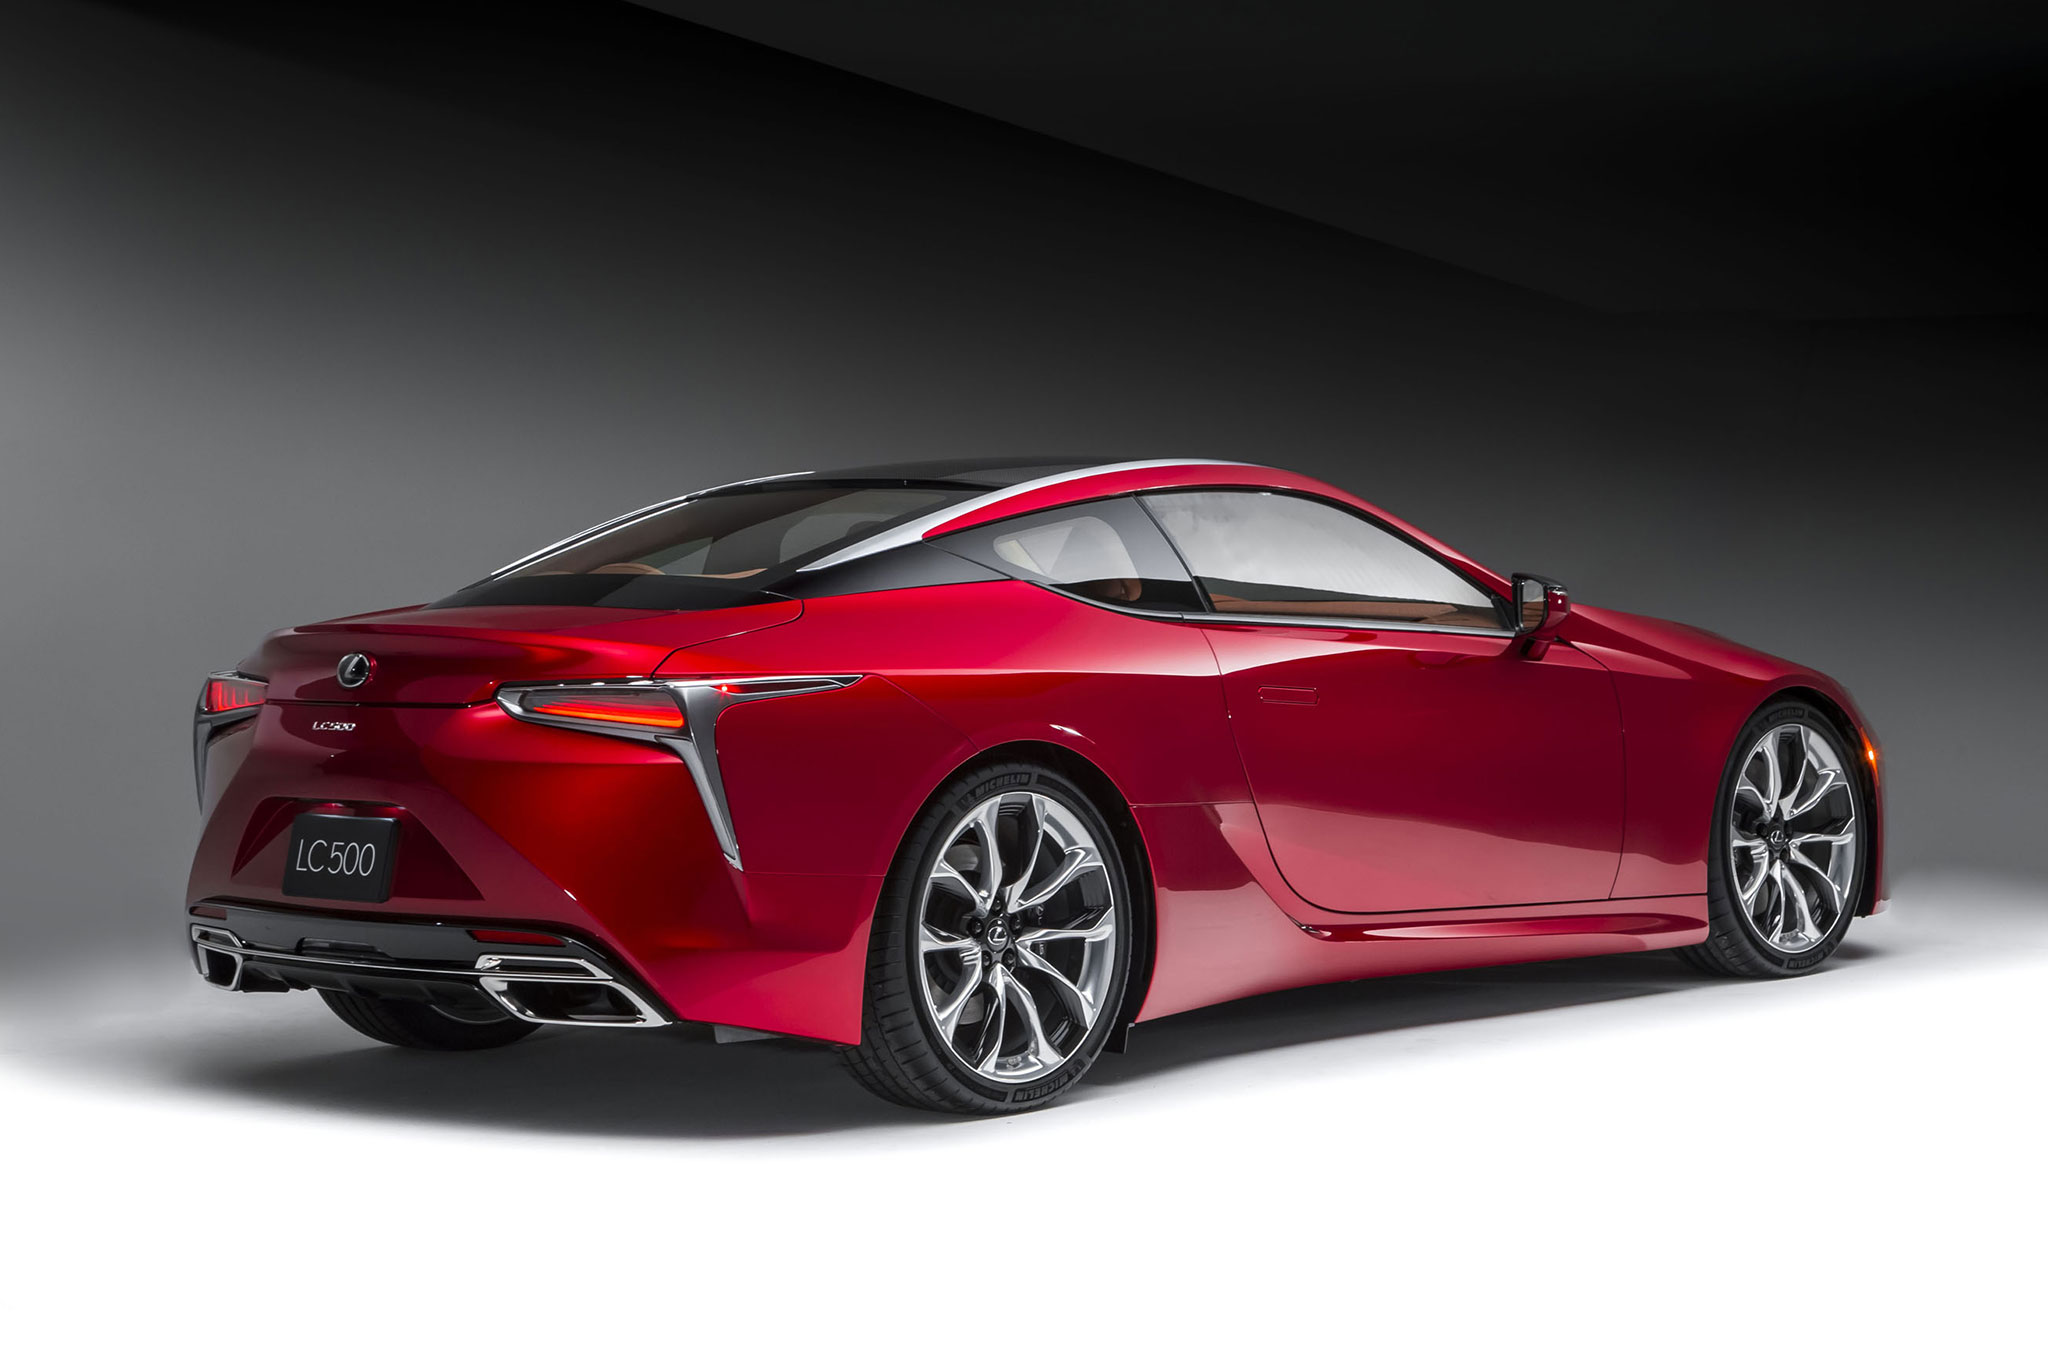 https://st.automobilemag.com/uploads/sites/11/2016/01/2018-Lexus-LC-500-rear-three-quarter-02.jpg